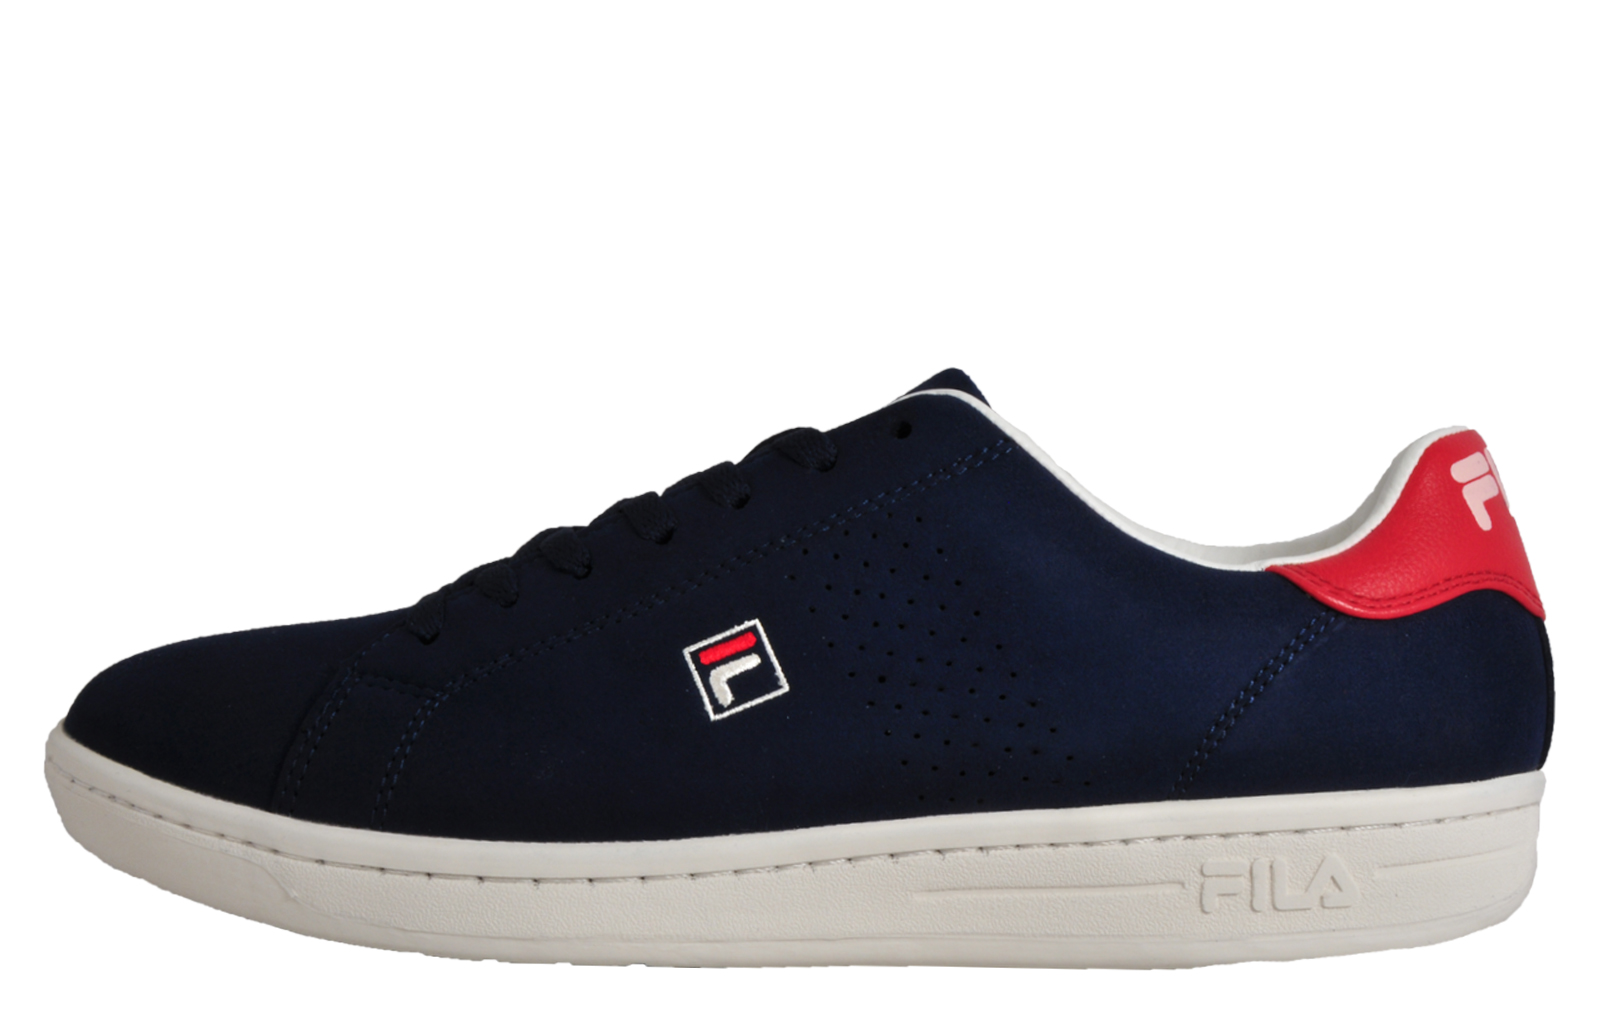 Fila Heritage Crosscourt 2 Low - FL160028